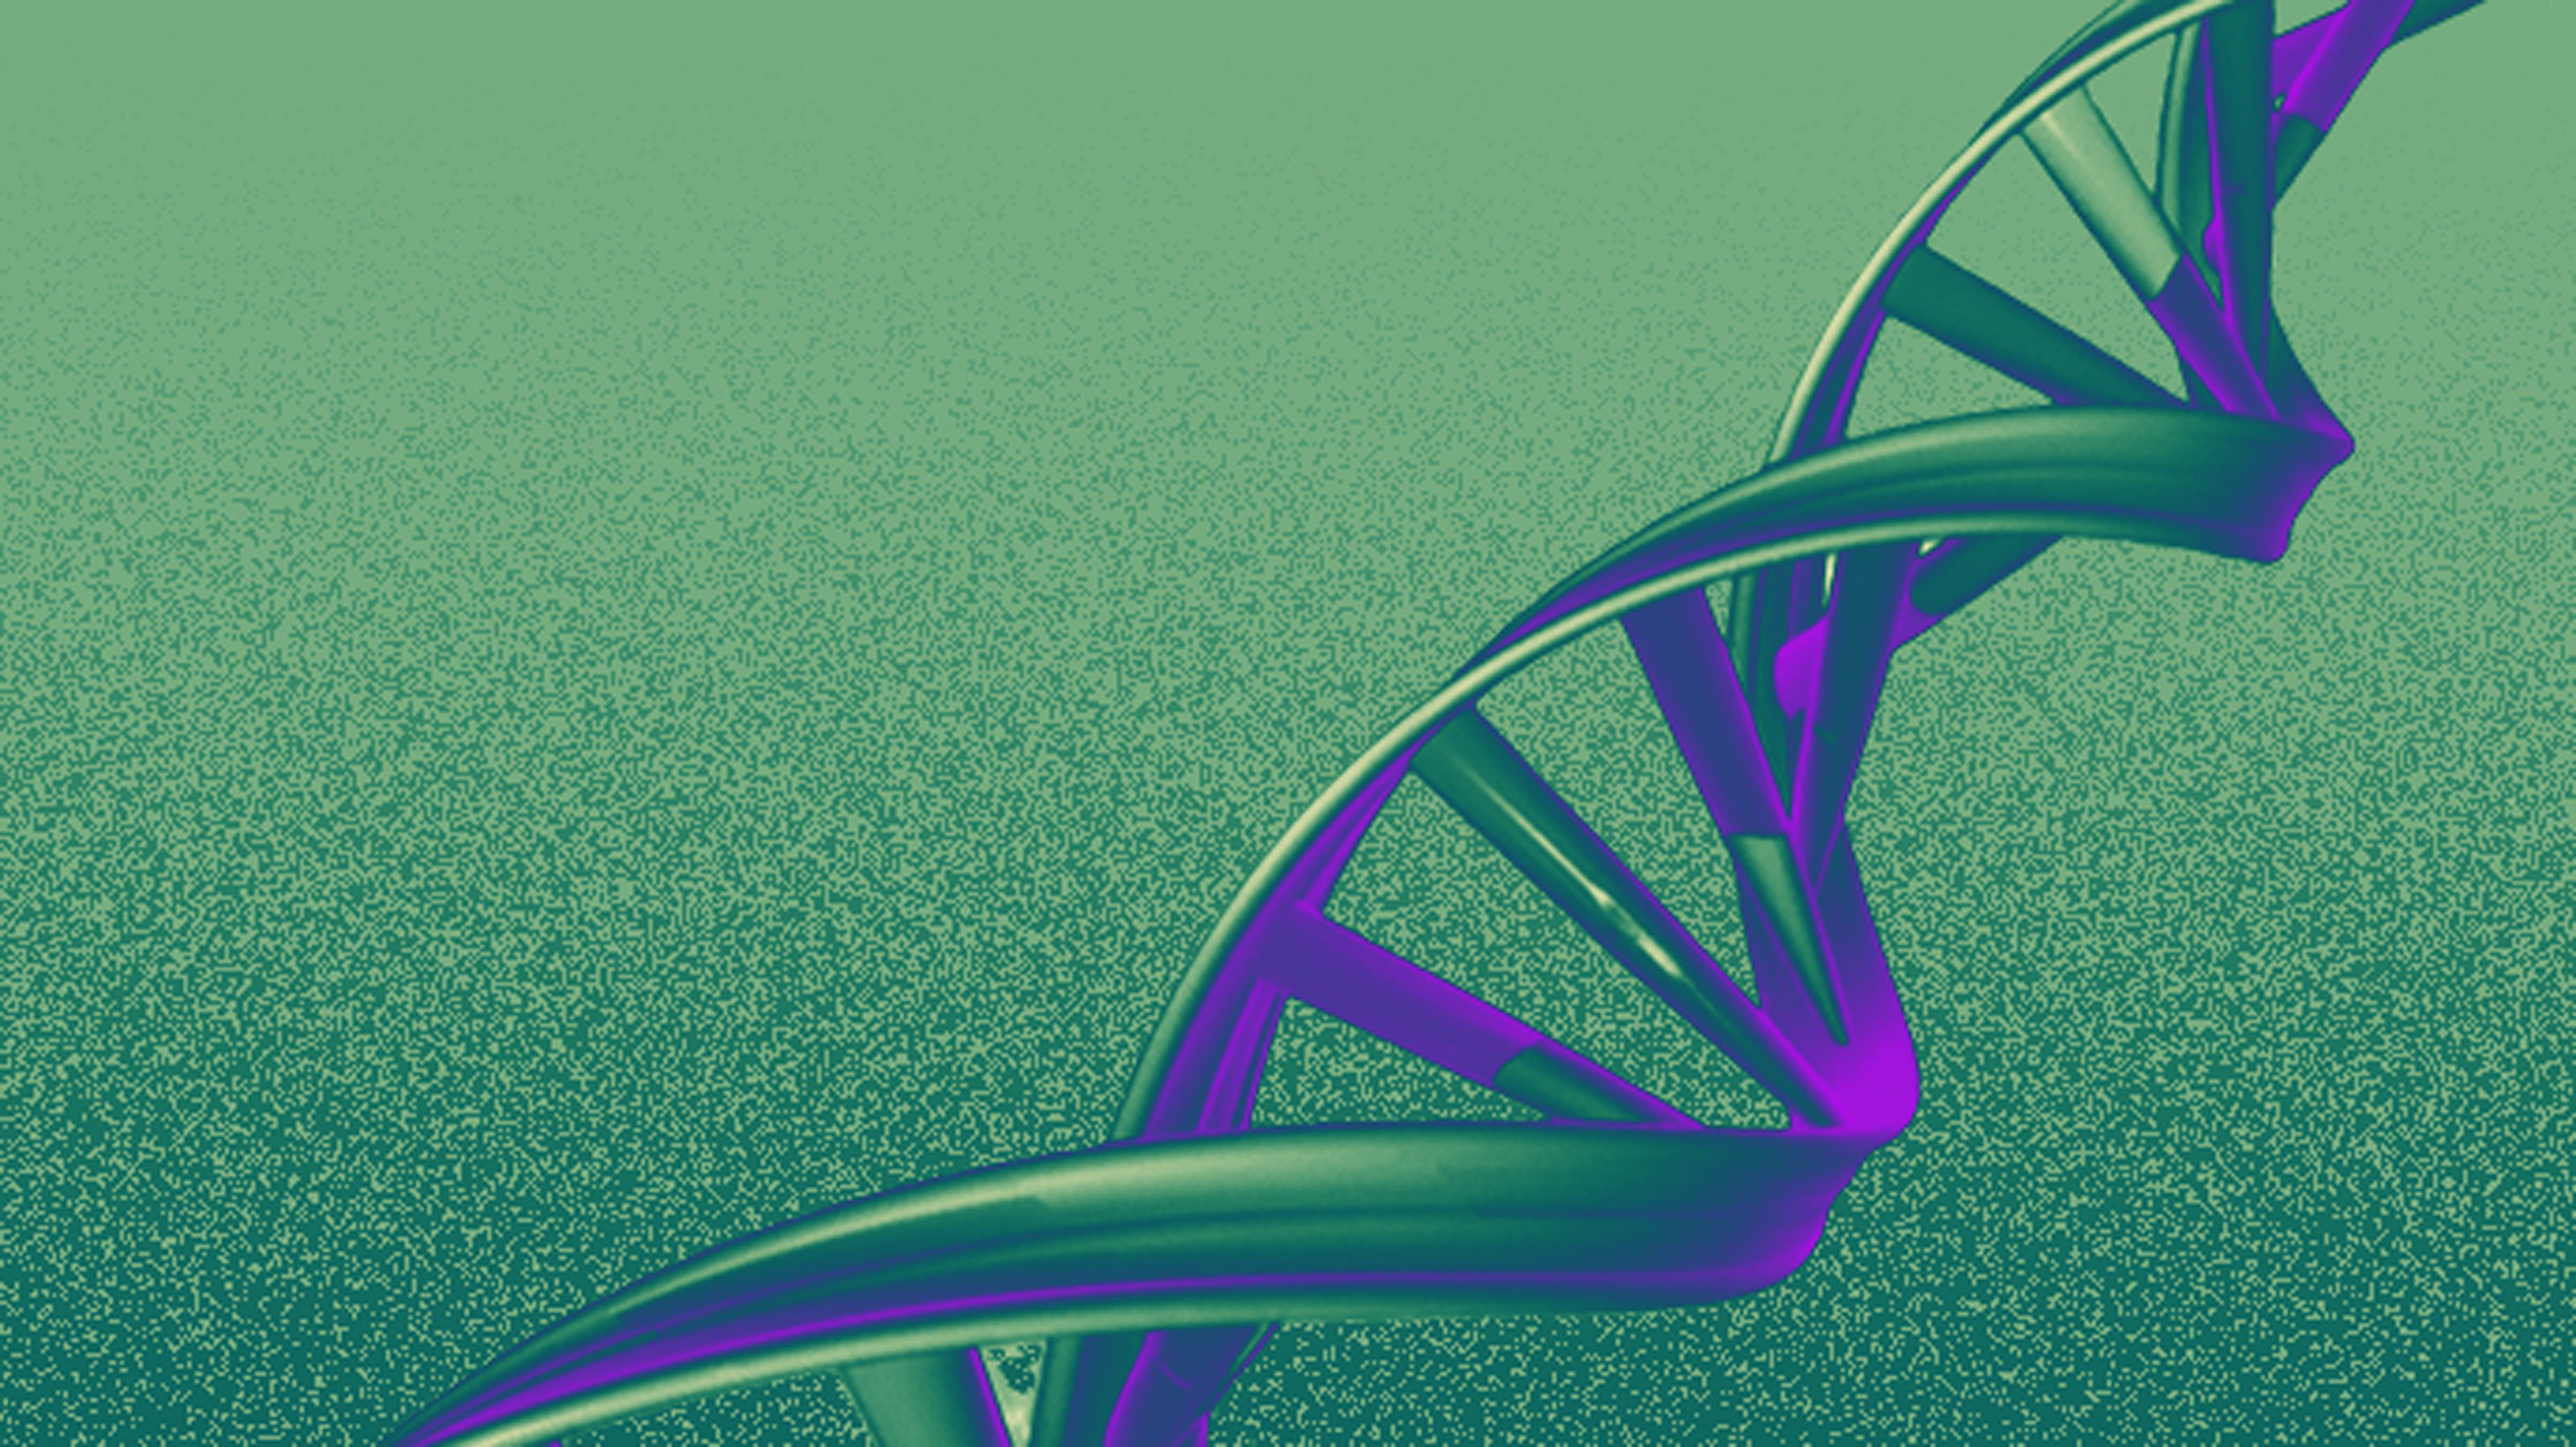 Conceptual illustration of DNA double helix